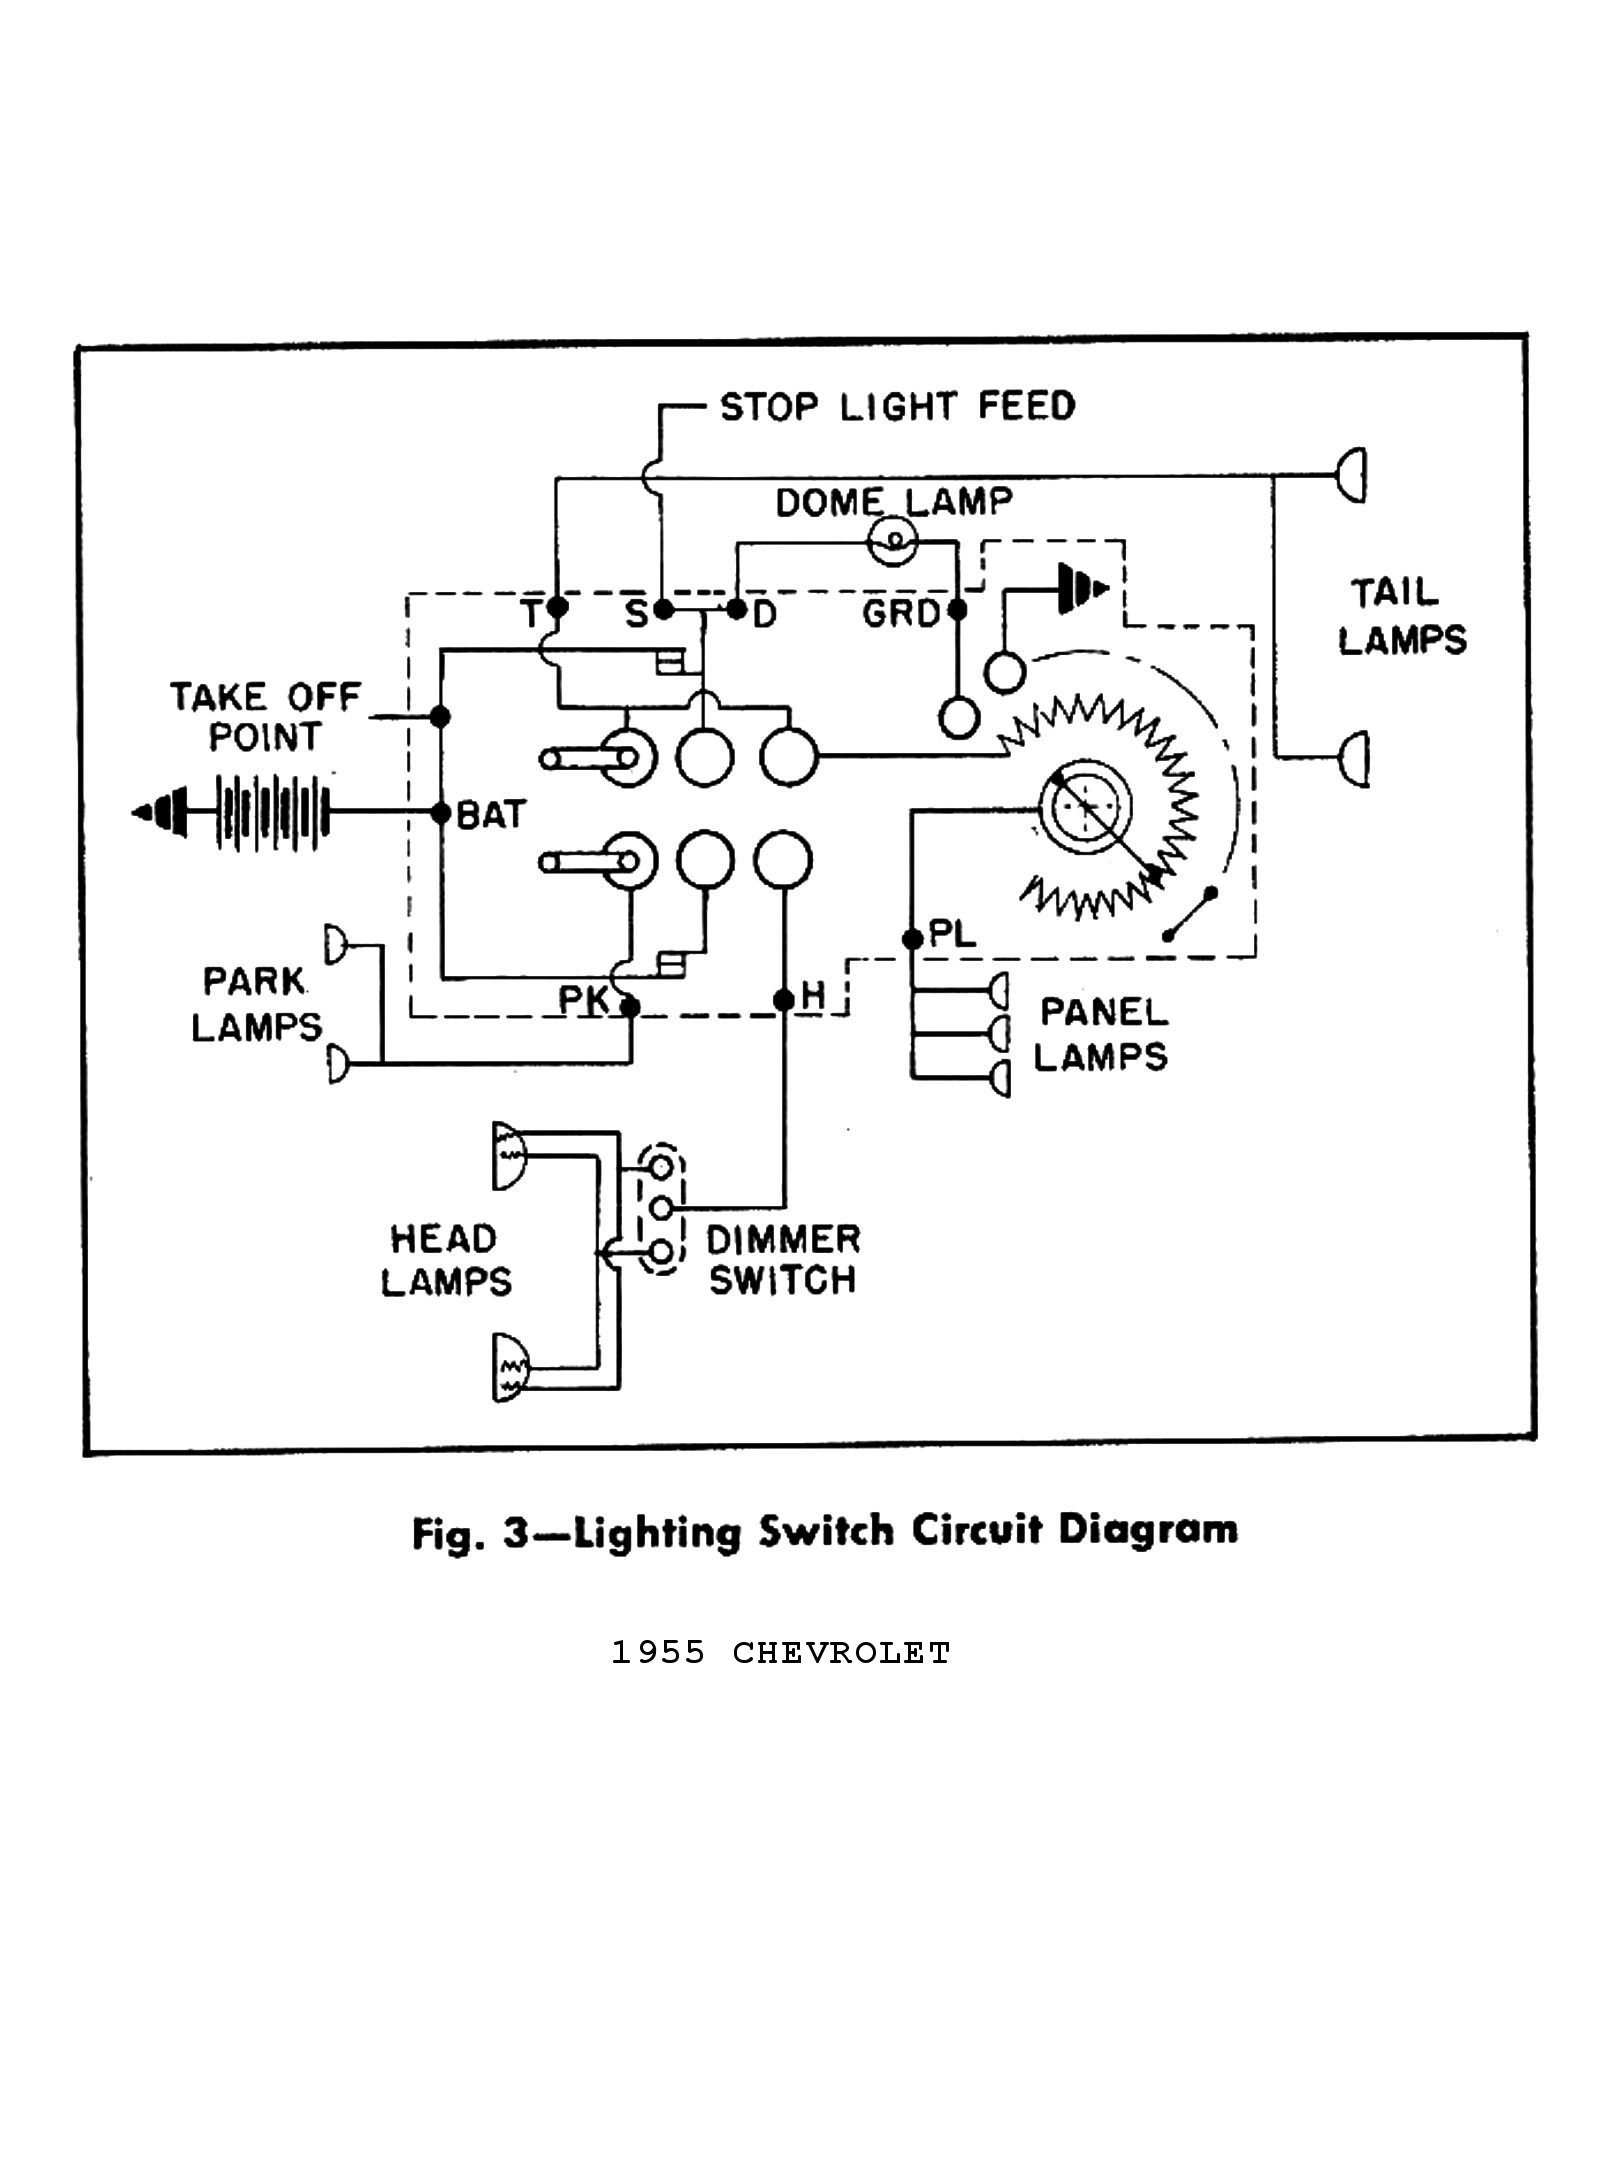 55ctsm1203 1955 chevy wiring diagram 1955 pontiac wiring diagram \u2022 free chevrolet headlight switch wiring diagram at alyssarenee.co